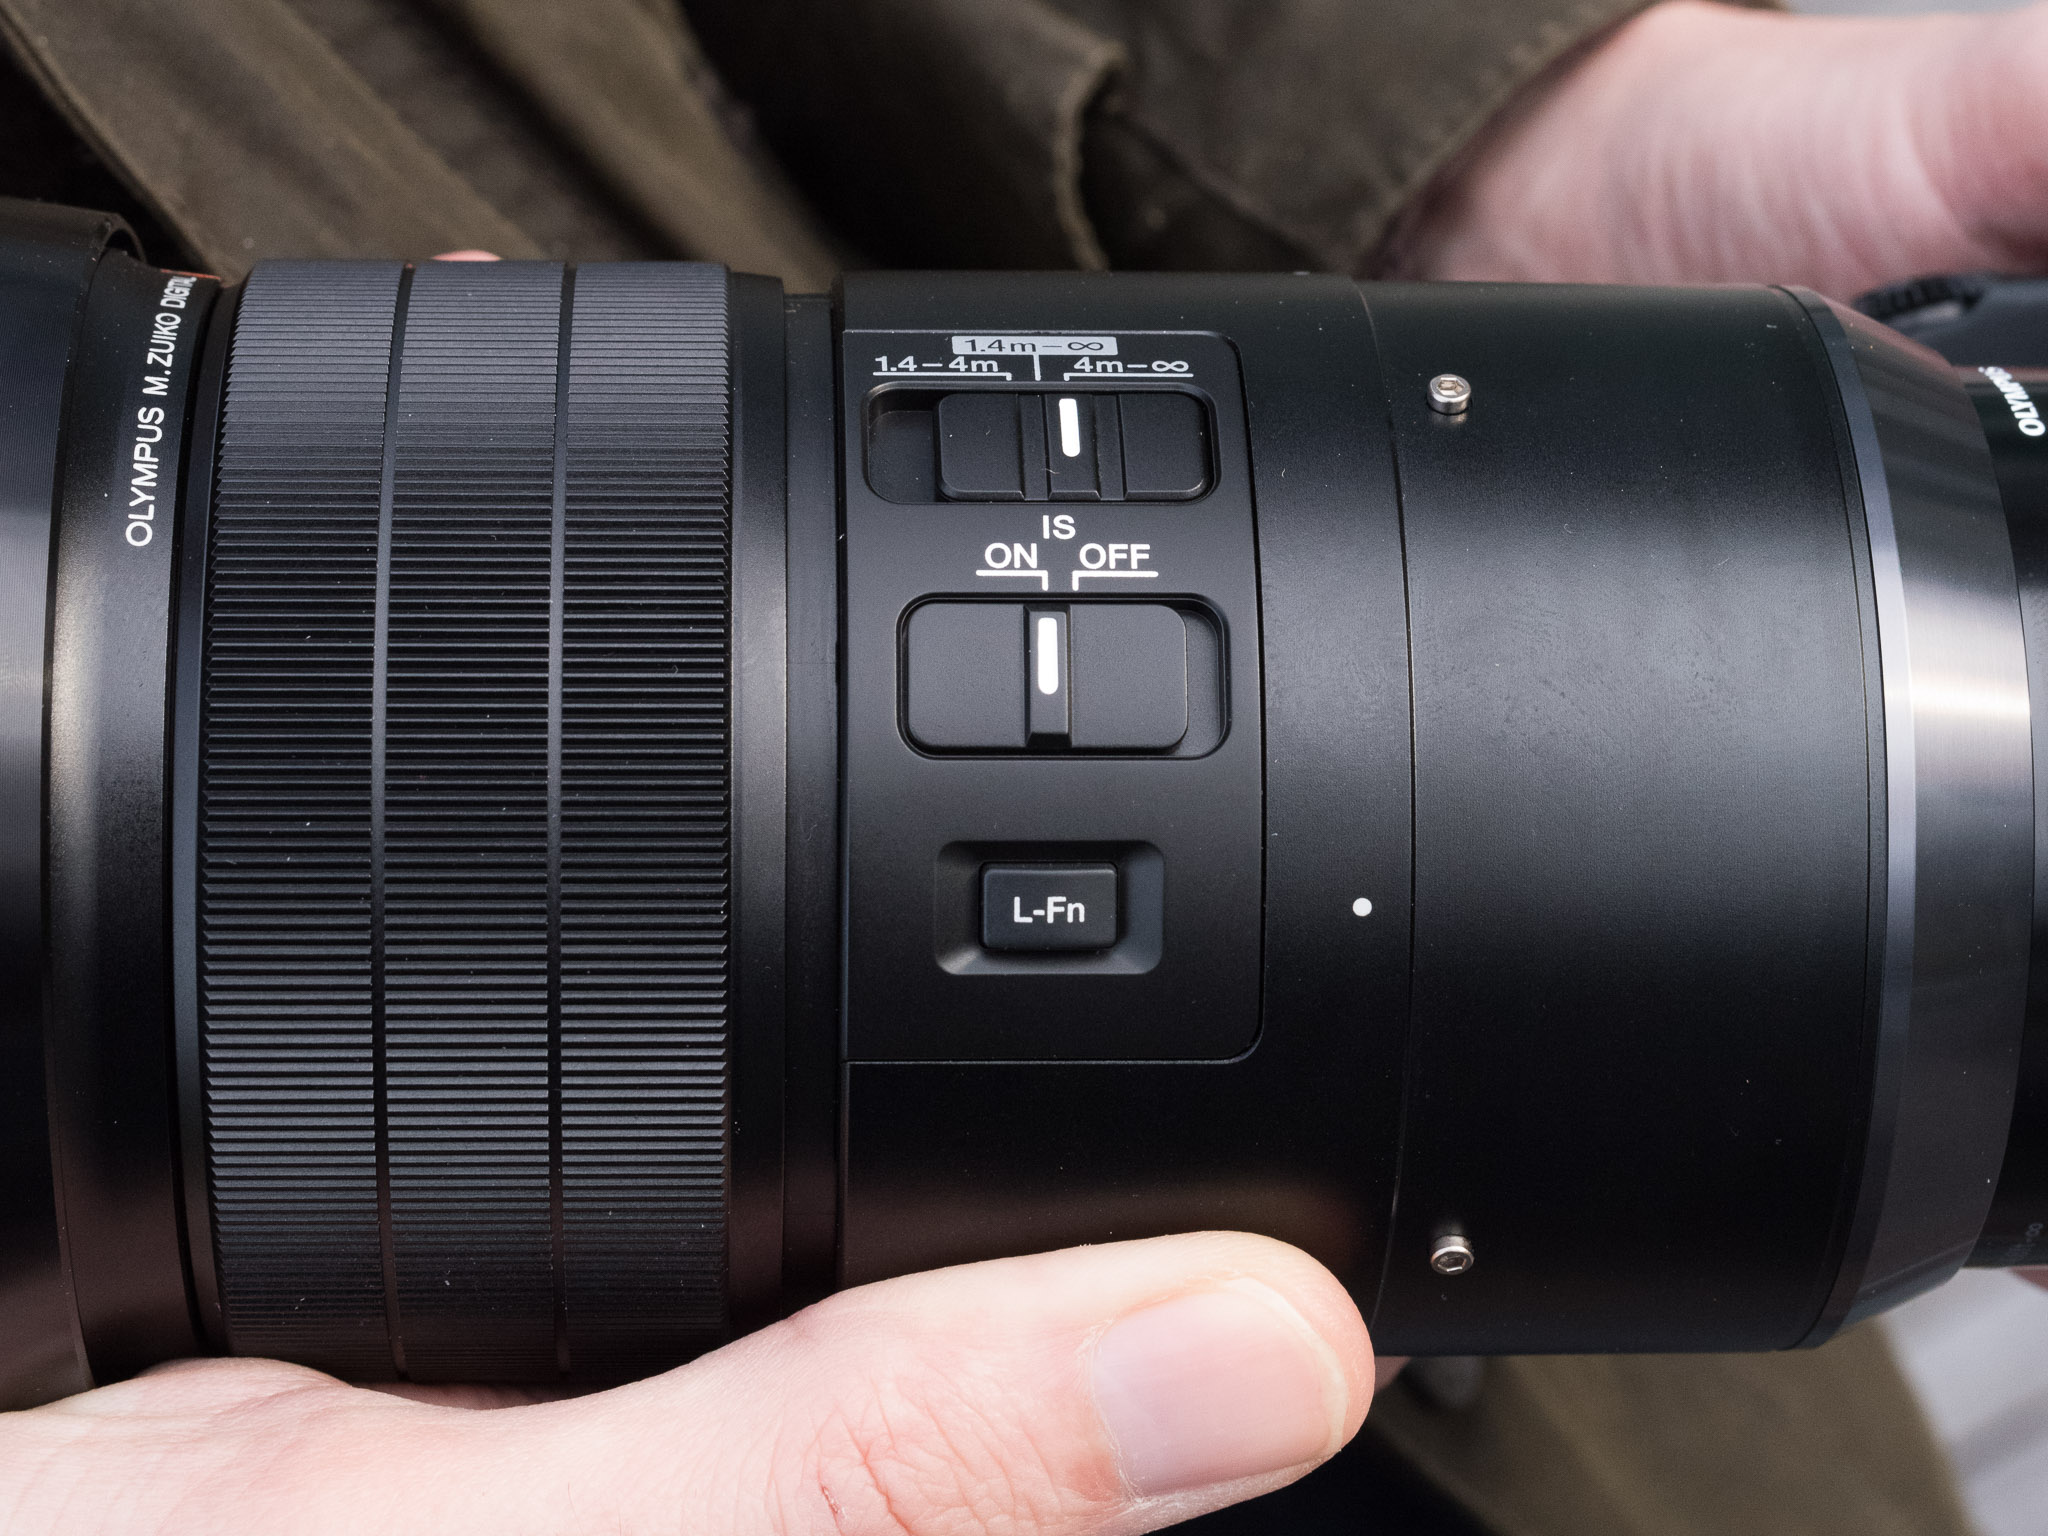 Olympus Mzuiko Digital Ed 300mm F4 Is Pro A Closer Look F 4 Lens The Closest Focus Distance On Pretty Impressive 14m 46 From Focal Plane 115m Front Of Giving Maximum Magnification